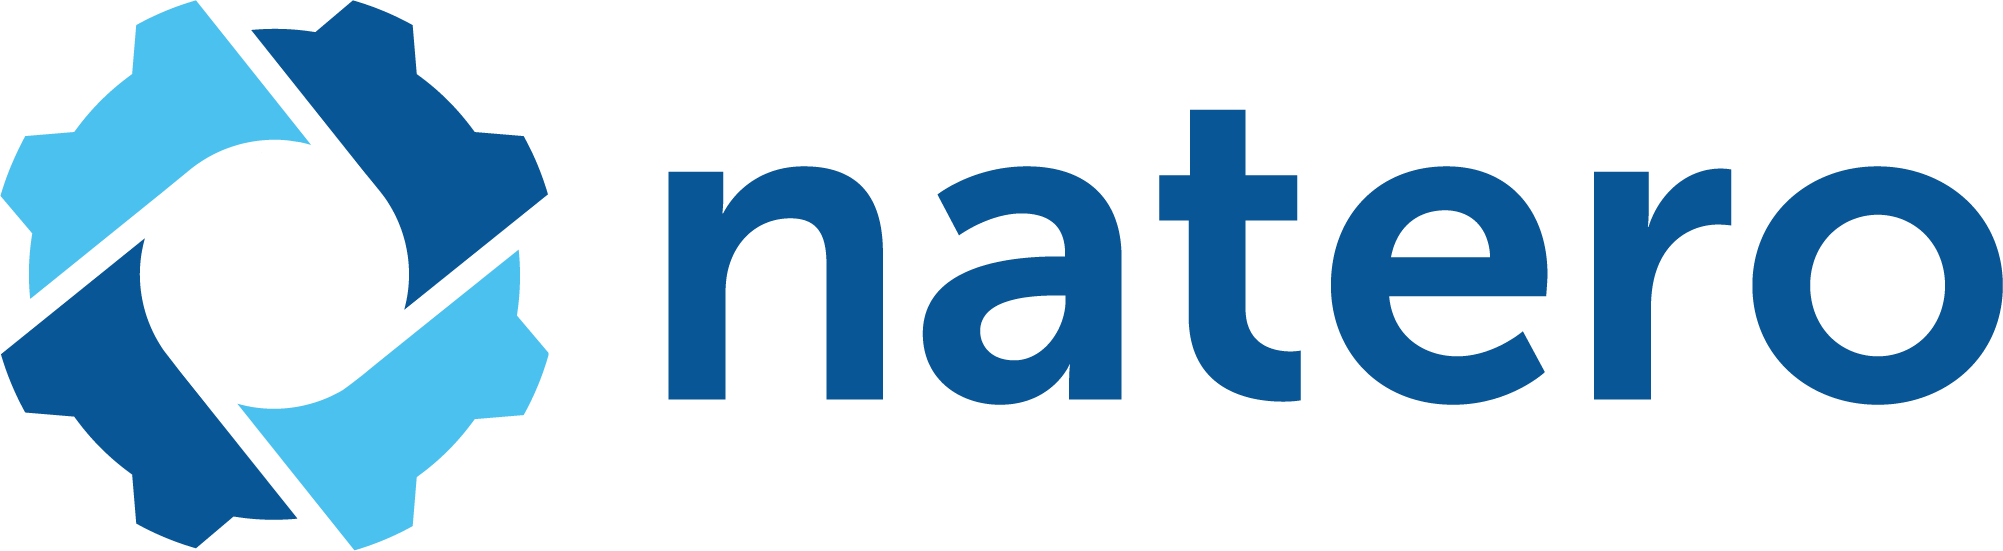 Natero helps Customer Success Managers reduce churn, increase expansion, and manage more accounts.